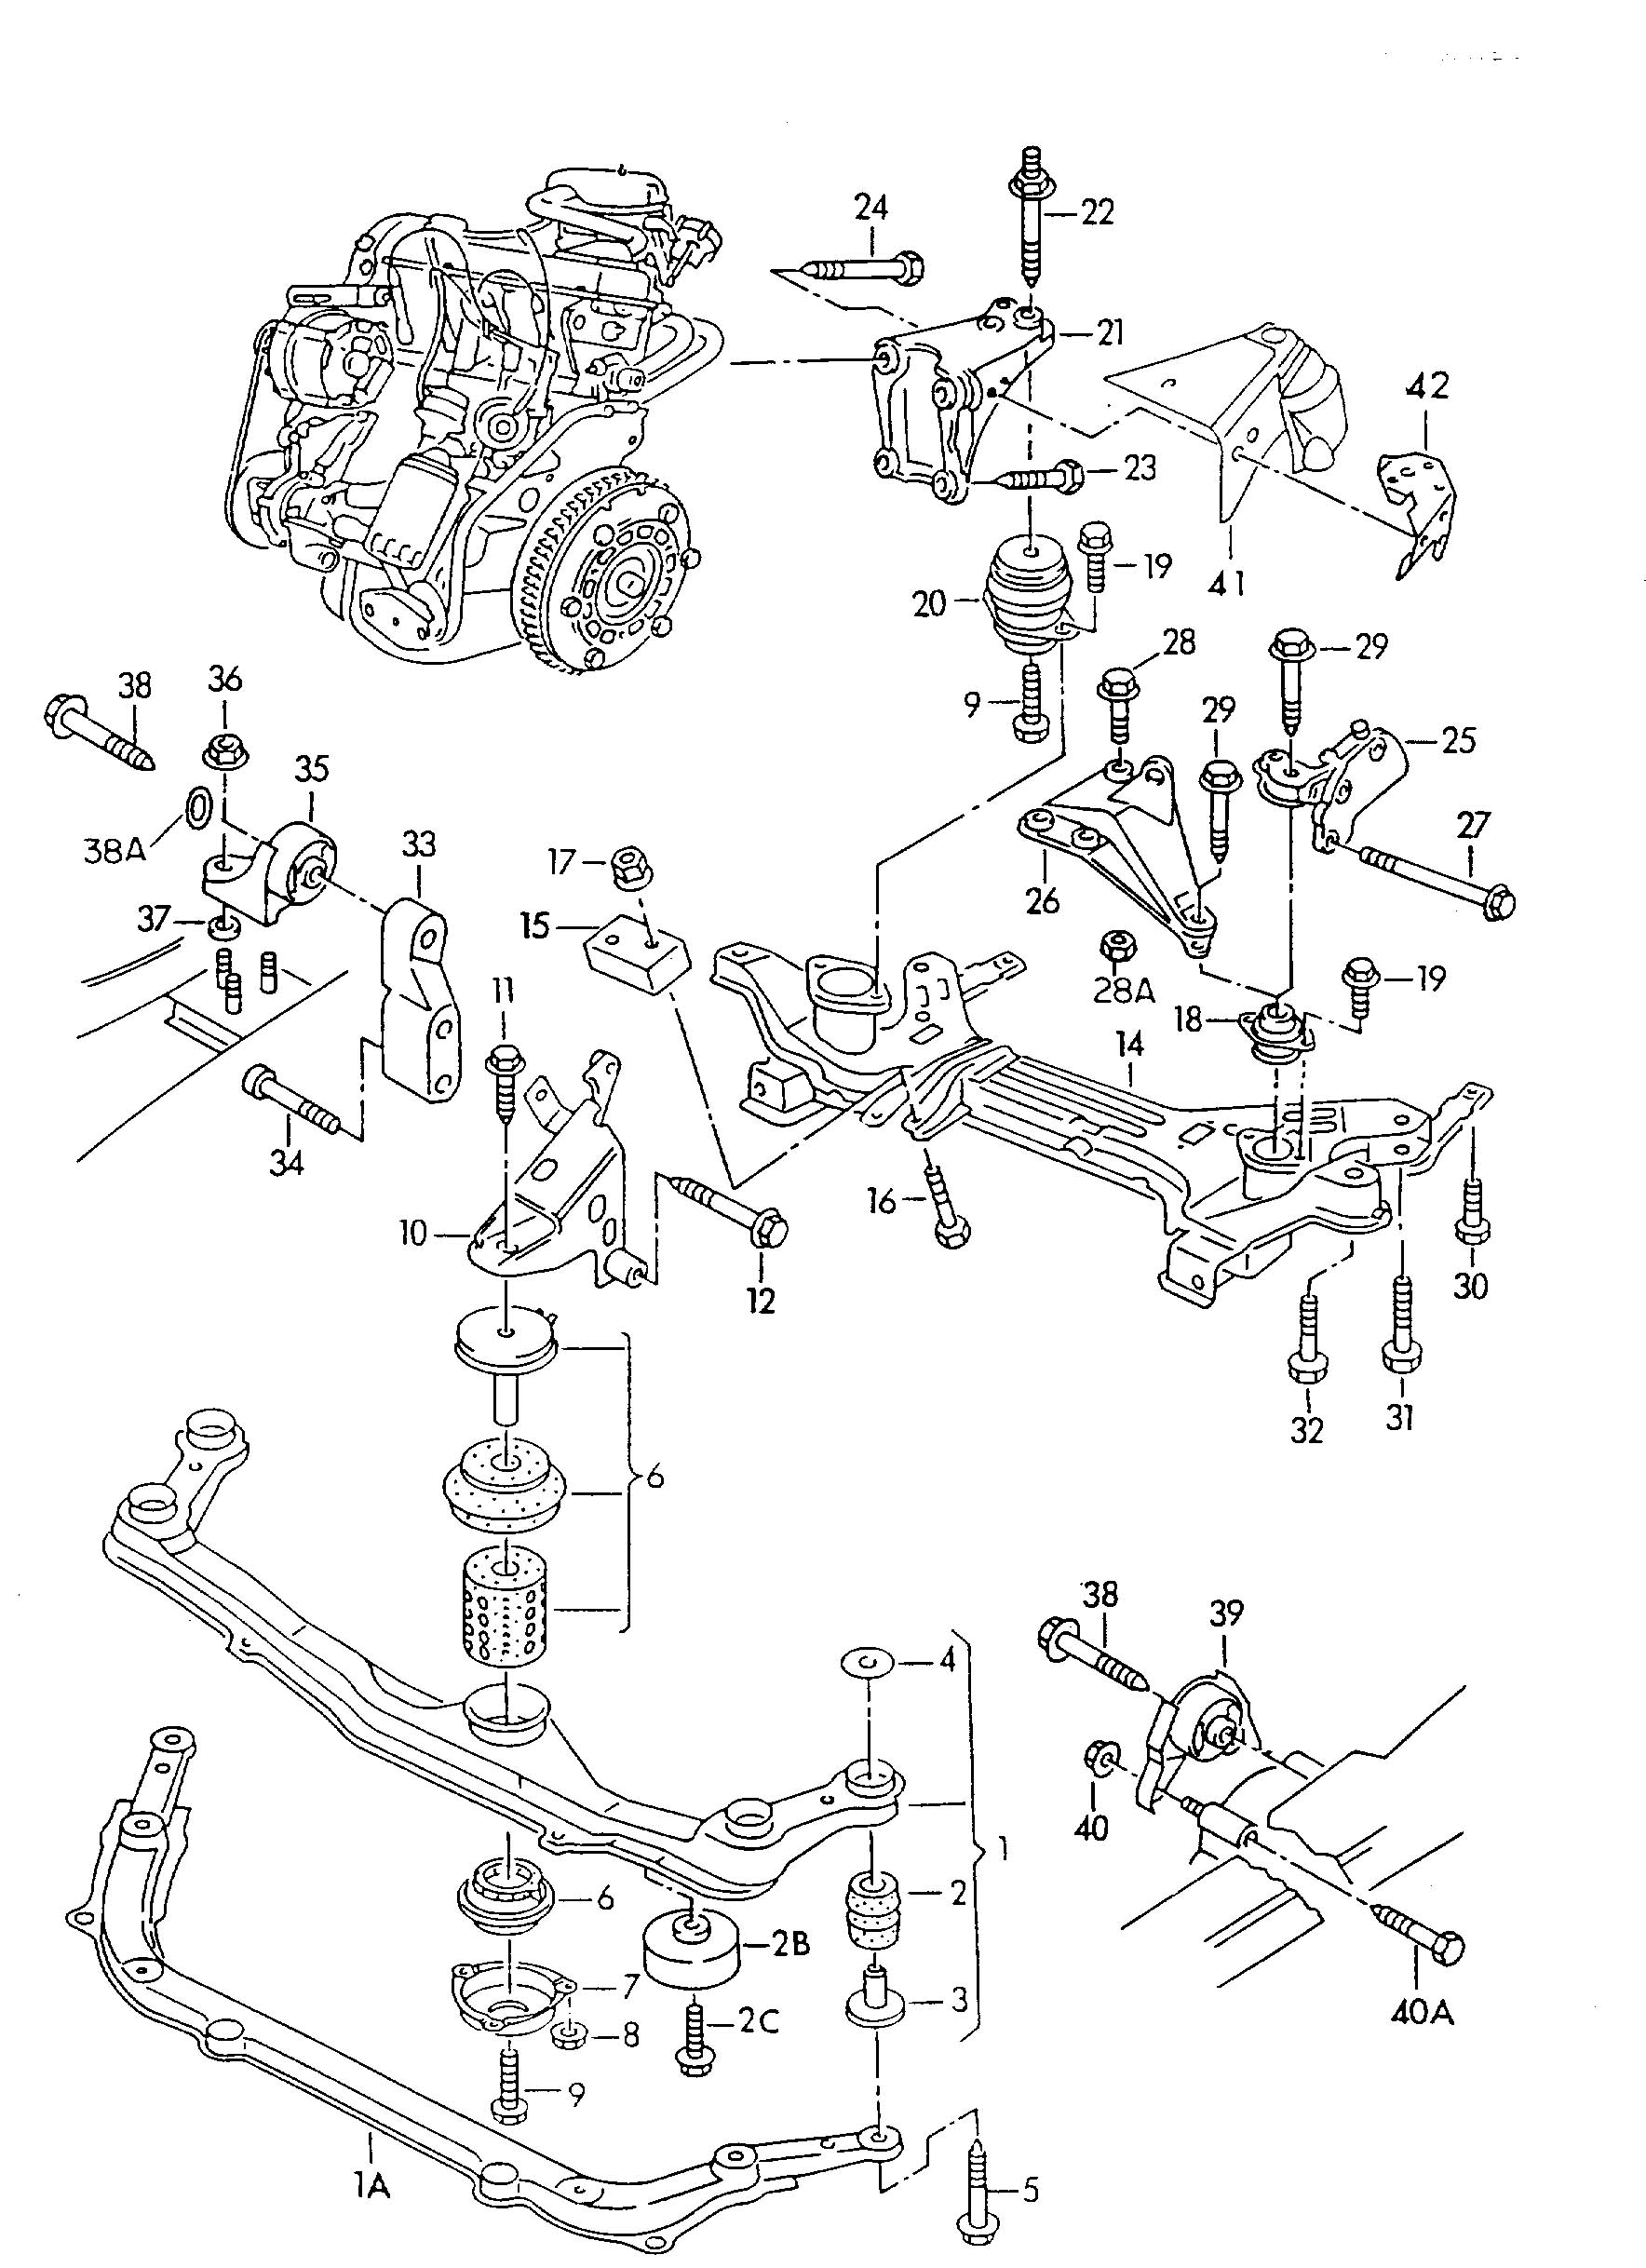 98 jetta glx fuse box diagram